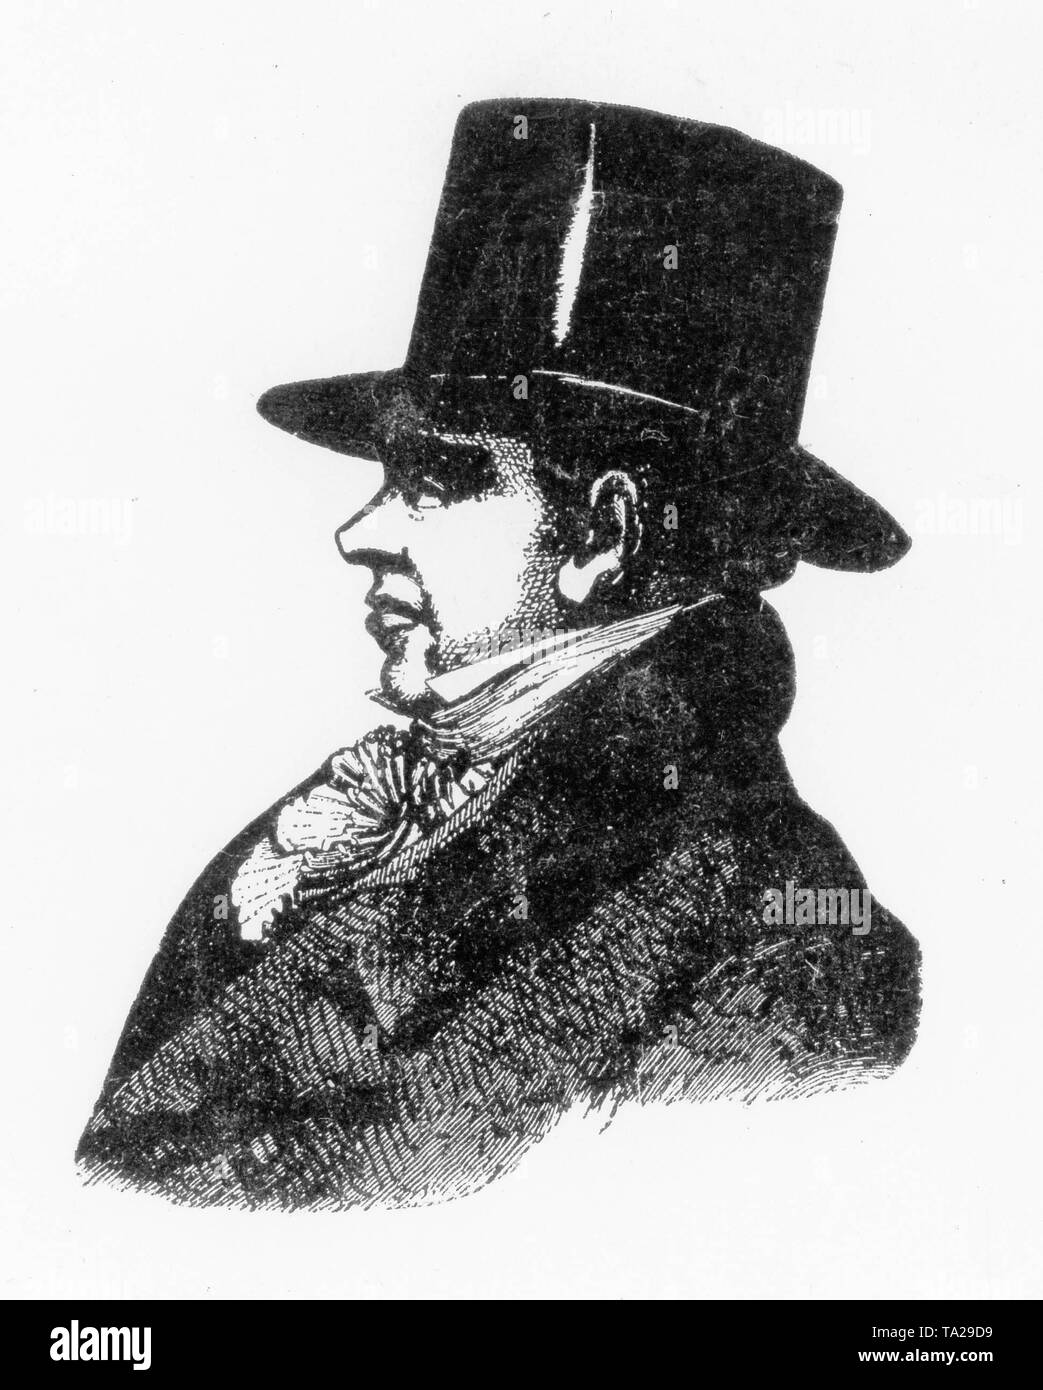 Profile portrait of Nathan Mayer Rothschild (1777-1836), founder of the London banking house of Rothschild and son of the founder of the Rothschild dynasty Mayer Amschel Rothschild - Stock Image